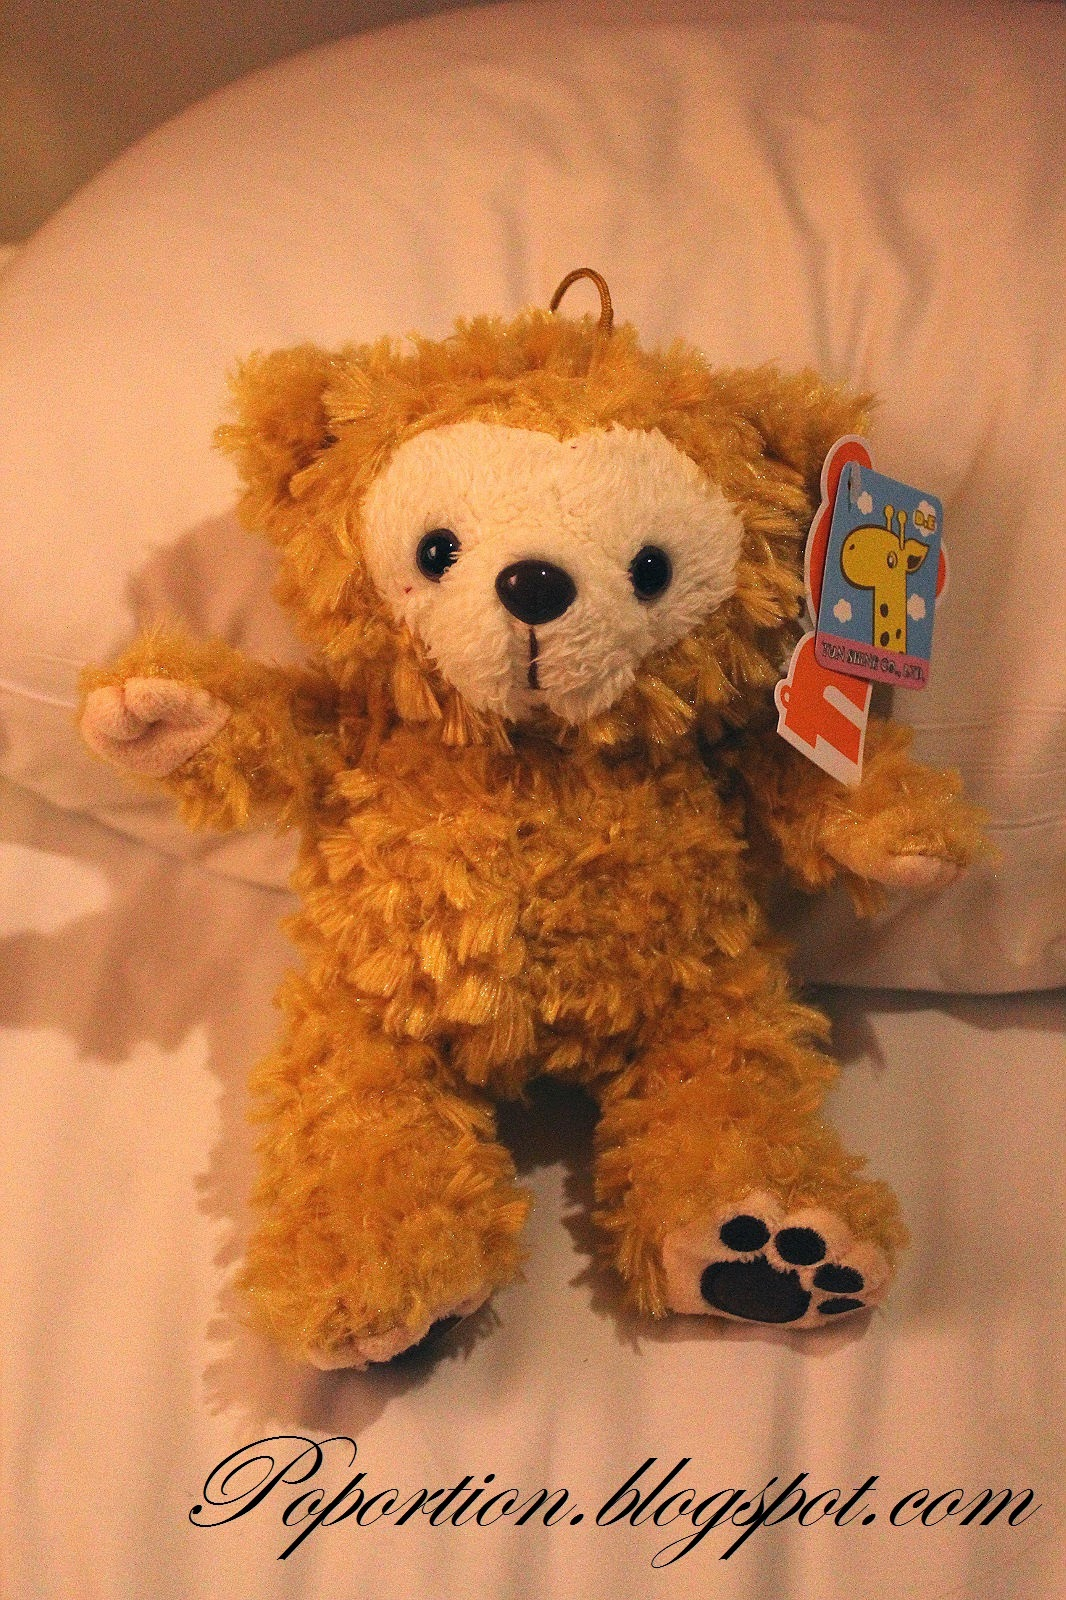 fake duffy from toy catching machine